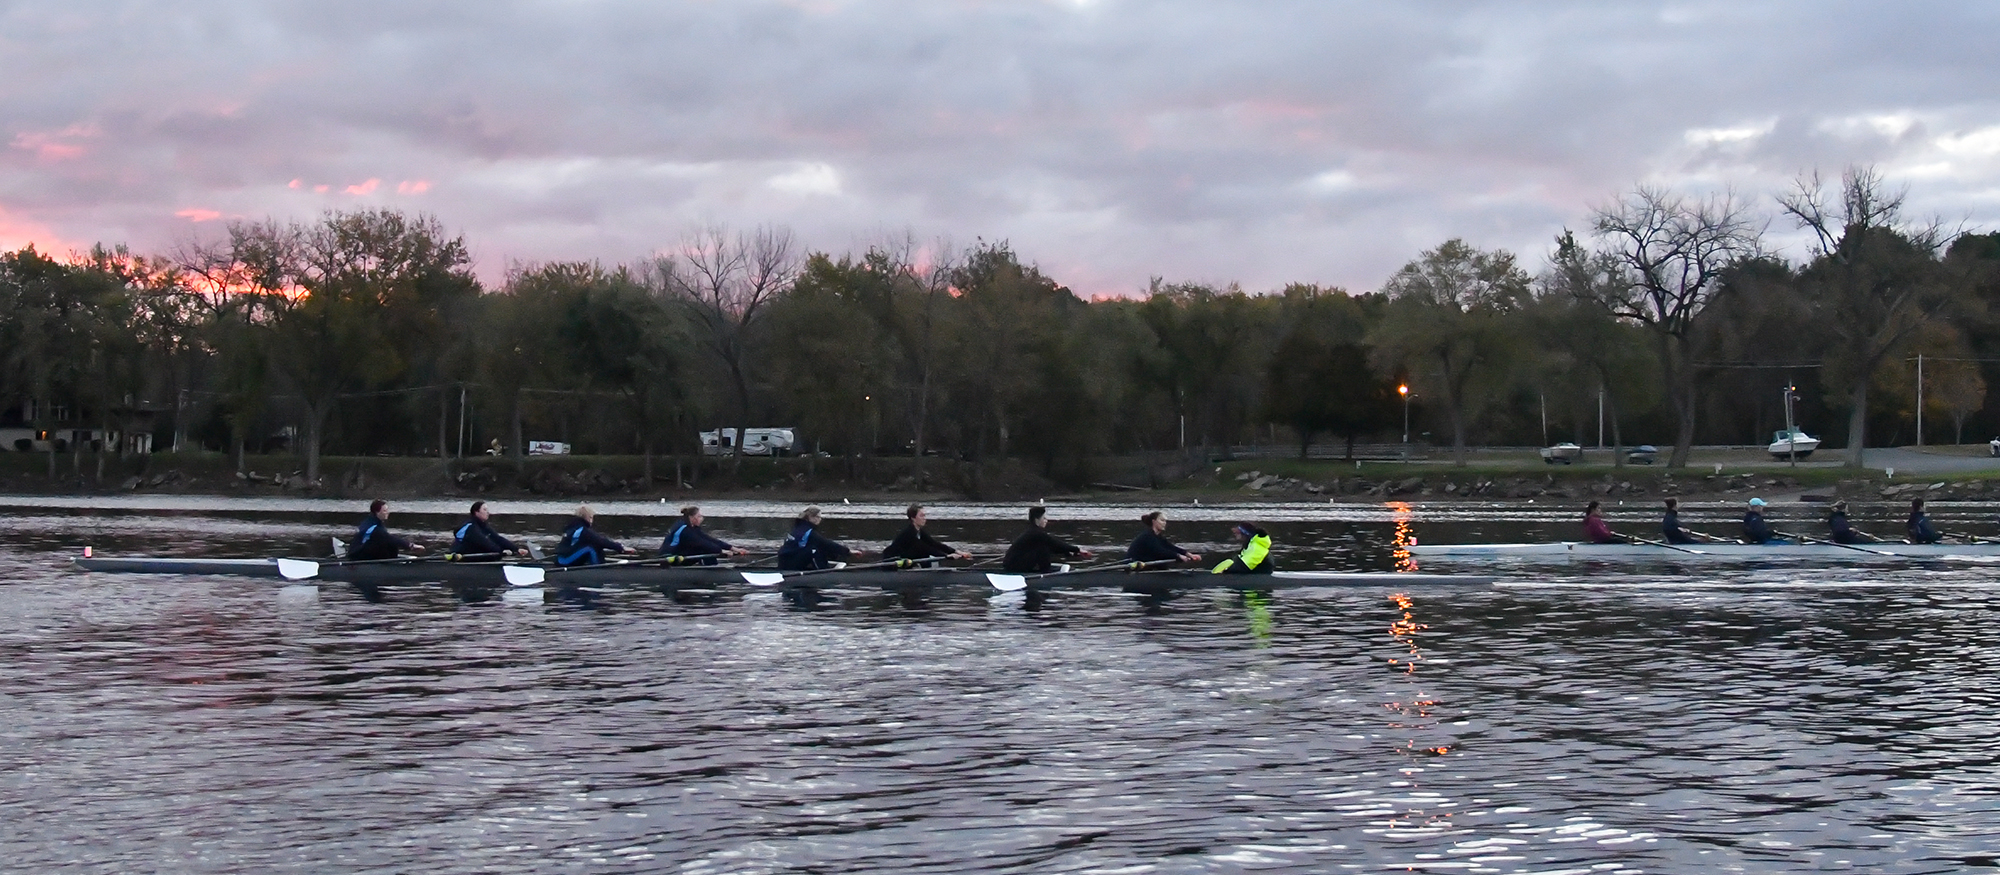 Action photo of the Lyons rowing team on the Connecticut River.